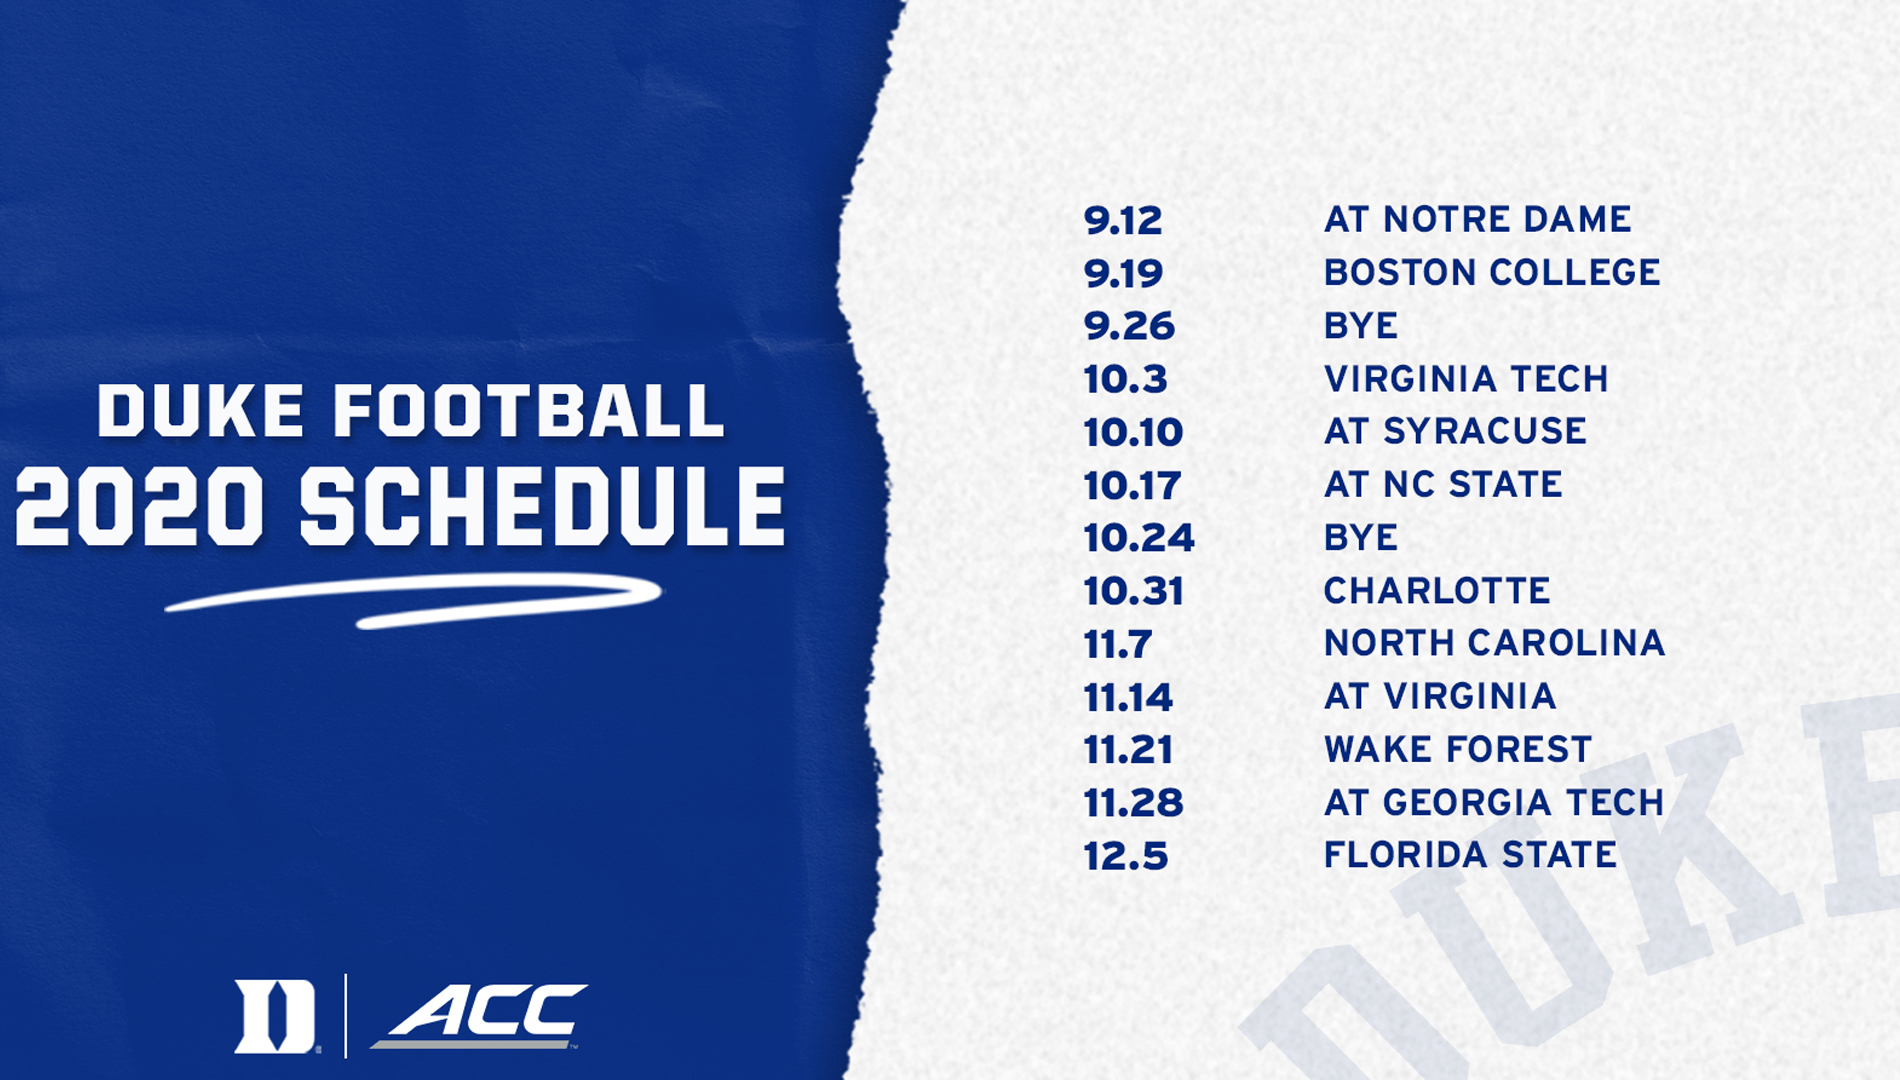 Duke S Amended 2020 Football Schedule Released Duke University